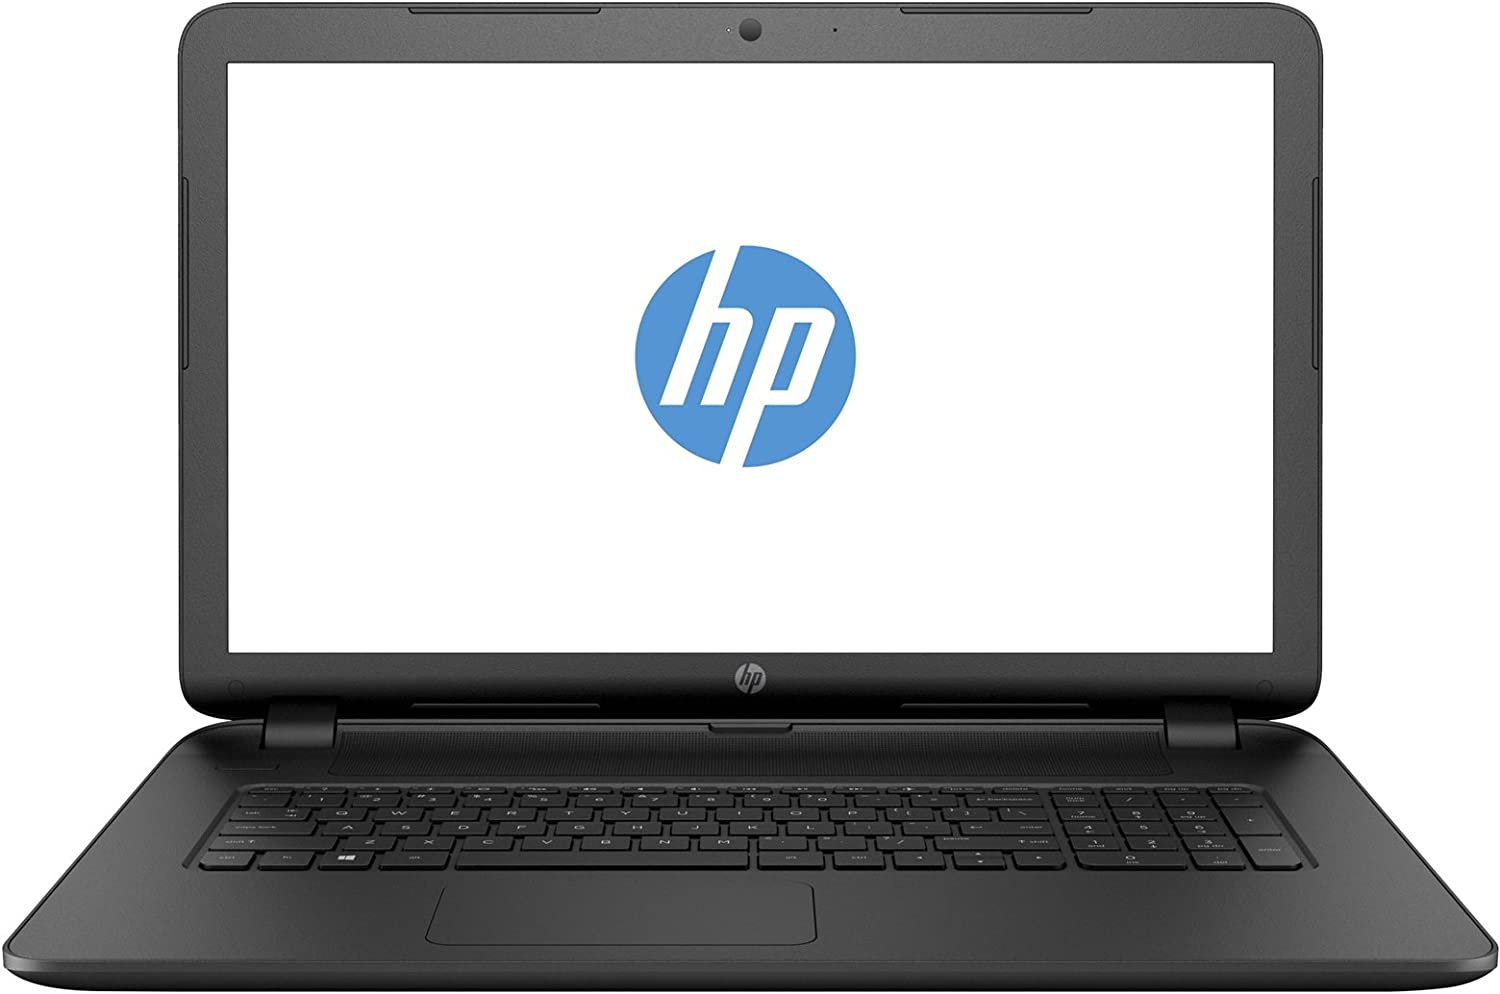 "HP 17.3"" HD High Performance Laptop - 7th Gen Intel Core i7-7500U Up To 3.5GHz, 8GB DDR4, 1TB HDD, SuperMulti DVD, 802.11b/g/n, Webcam, HDMI, USB 3.0, Windows 10"